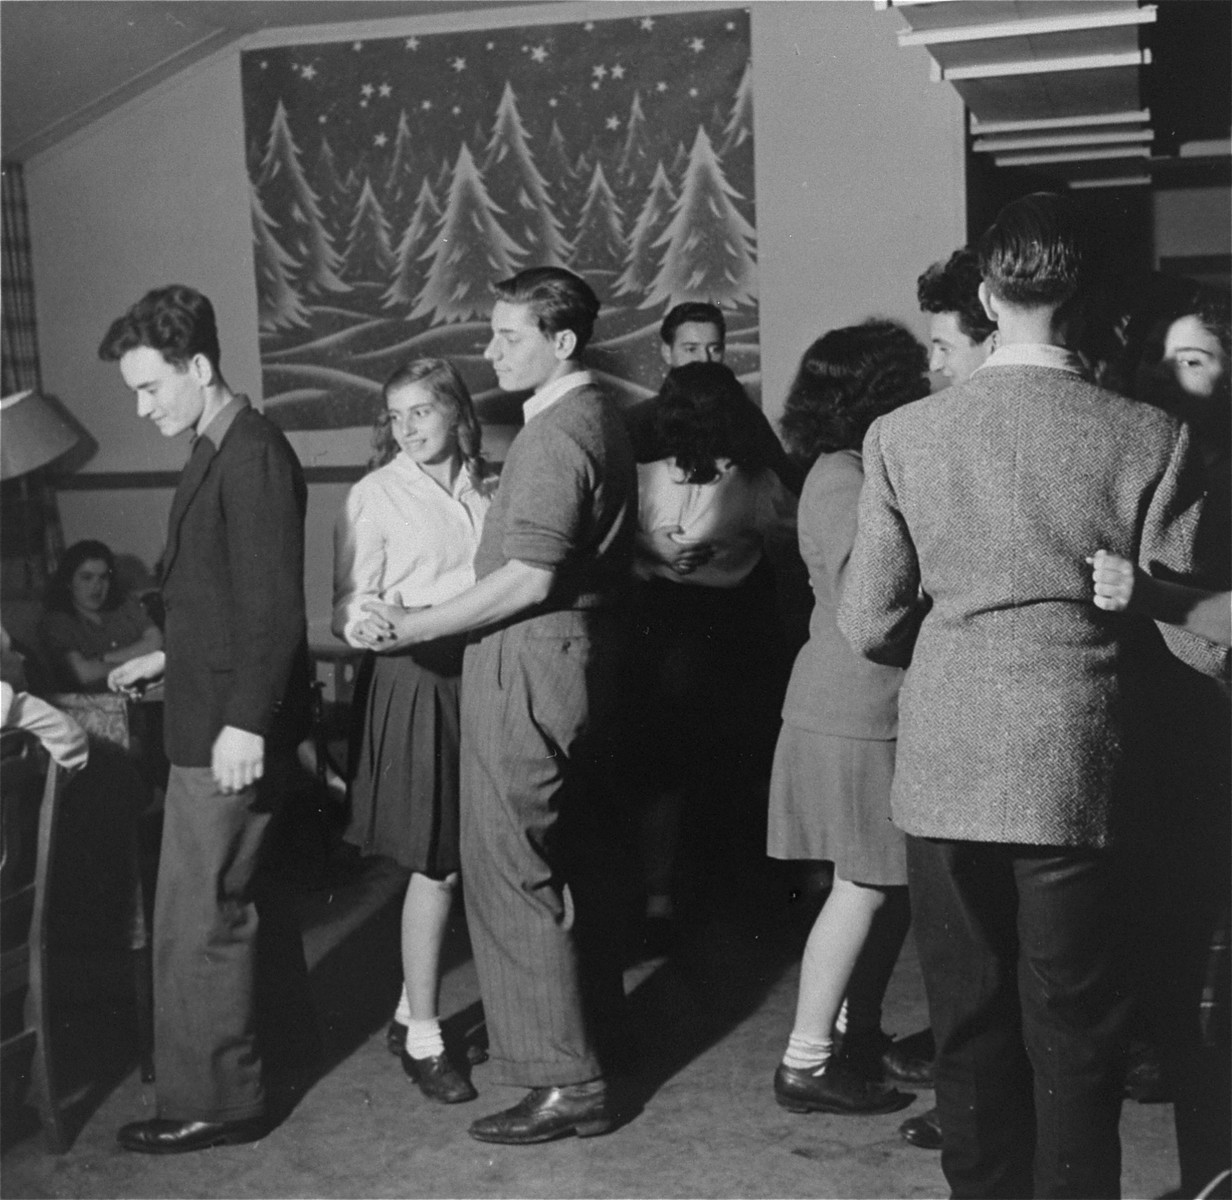 A youth group dance at the Fort Ontario Refugee Center.  Among those pictured left to right are David Hendel, Dorit Reisner, Koki Levi (from Yugoslavia), Adam Munz and [Ivo Lederer].